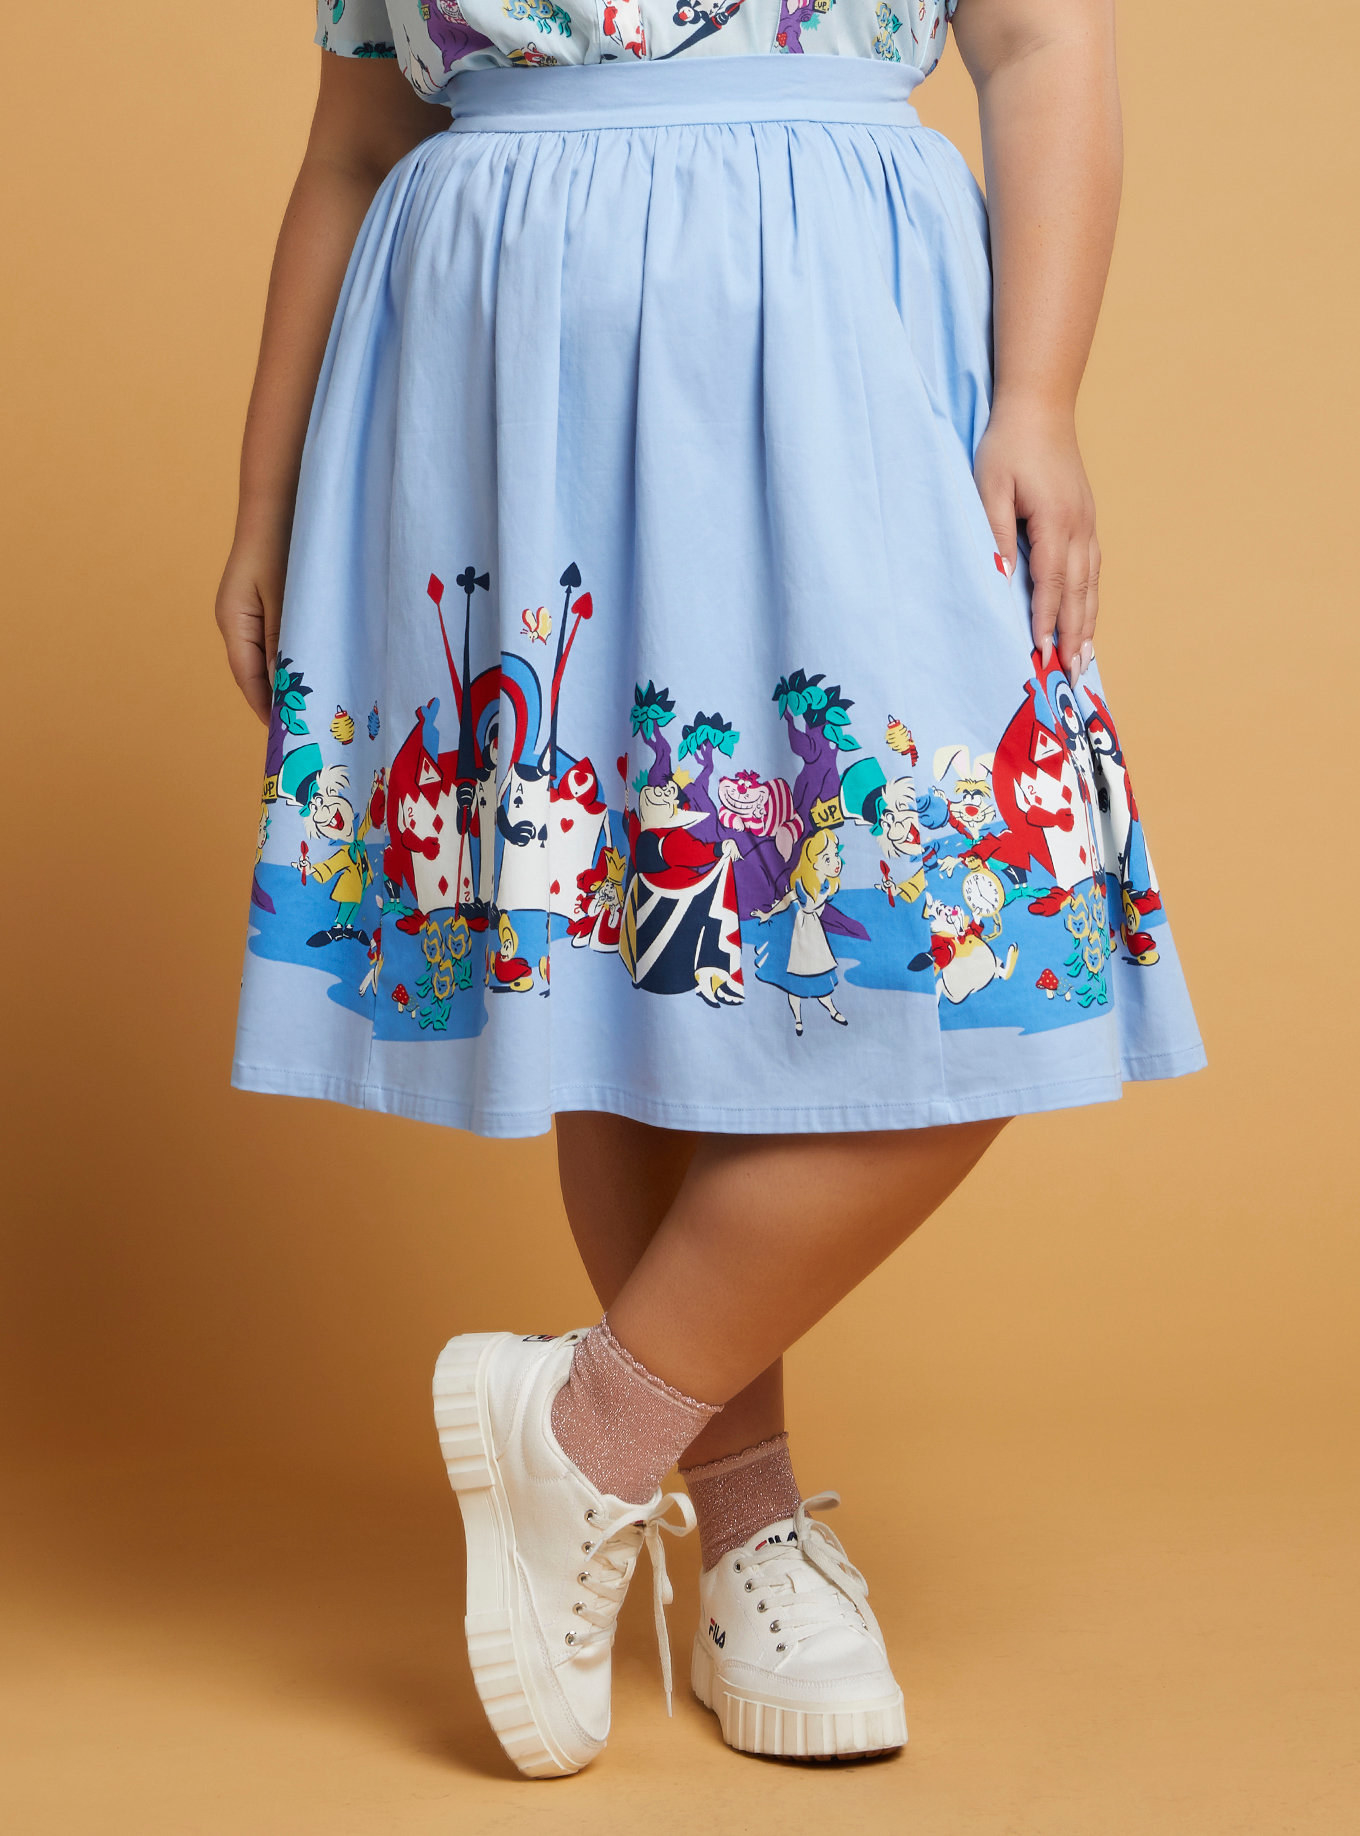 High waisted skirt with Alice in Wonderland characters on hemline